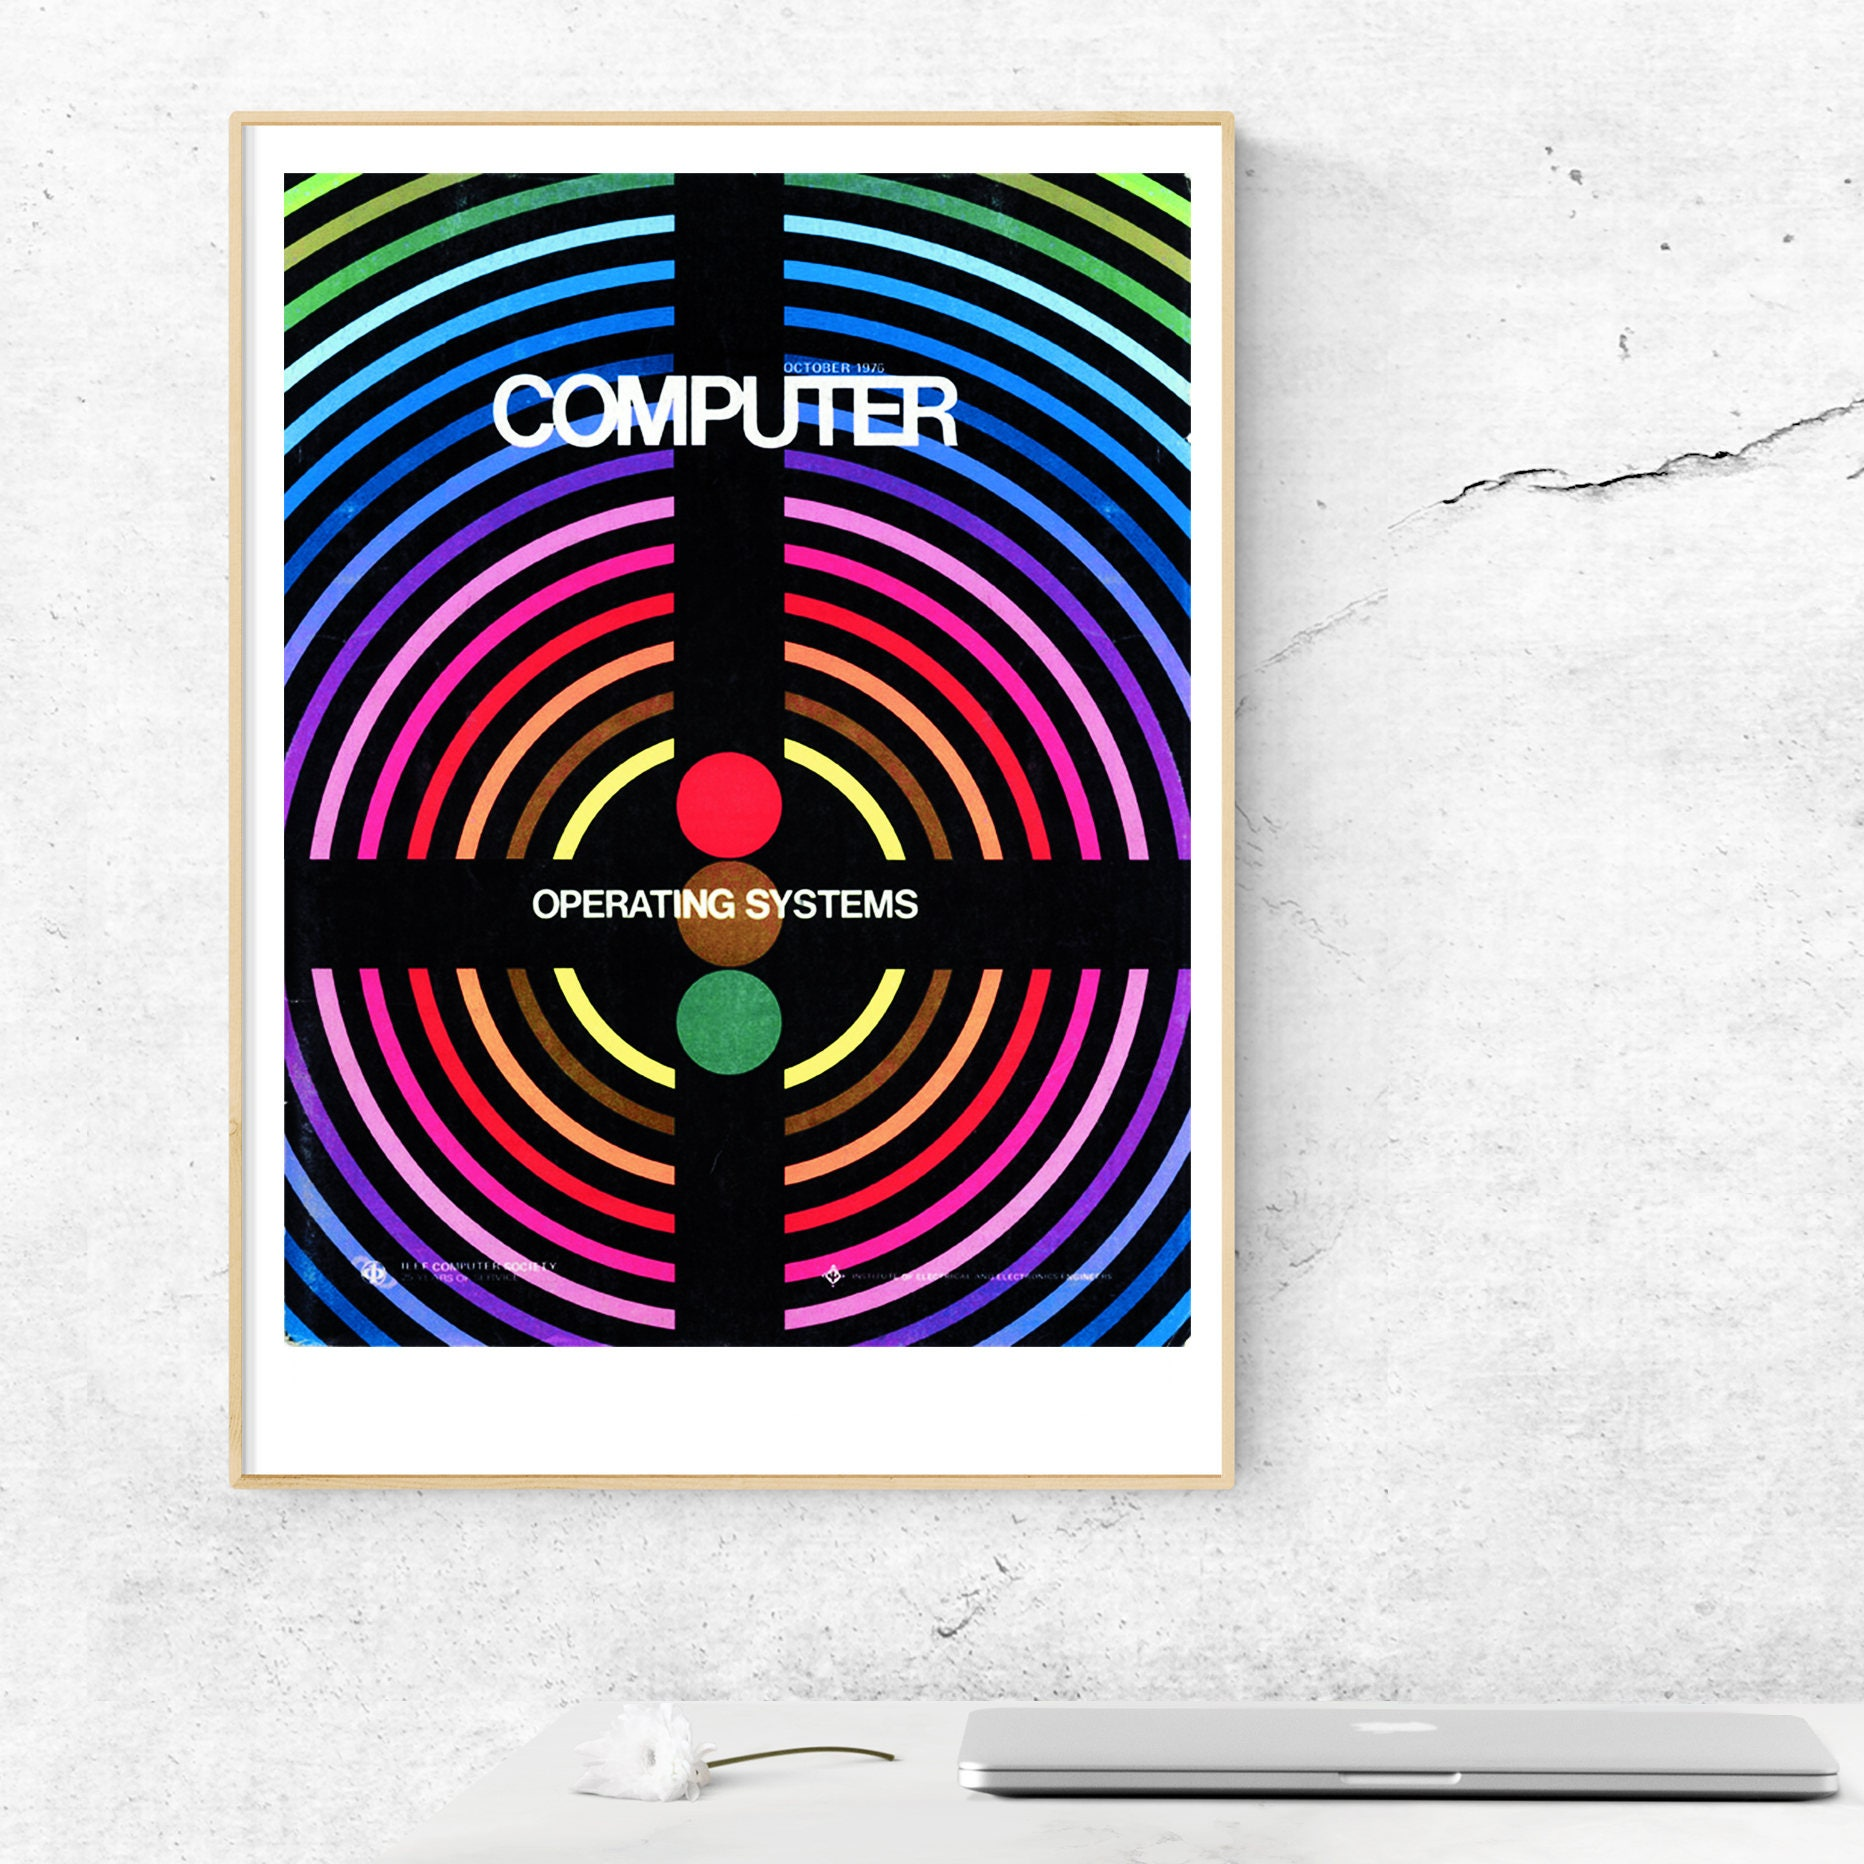 1970s puter Poster Wall Art Science Geek Print Retro Graphic